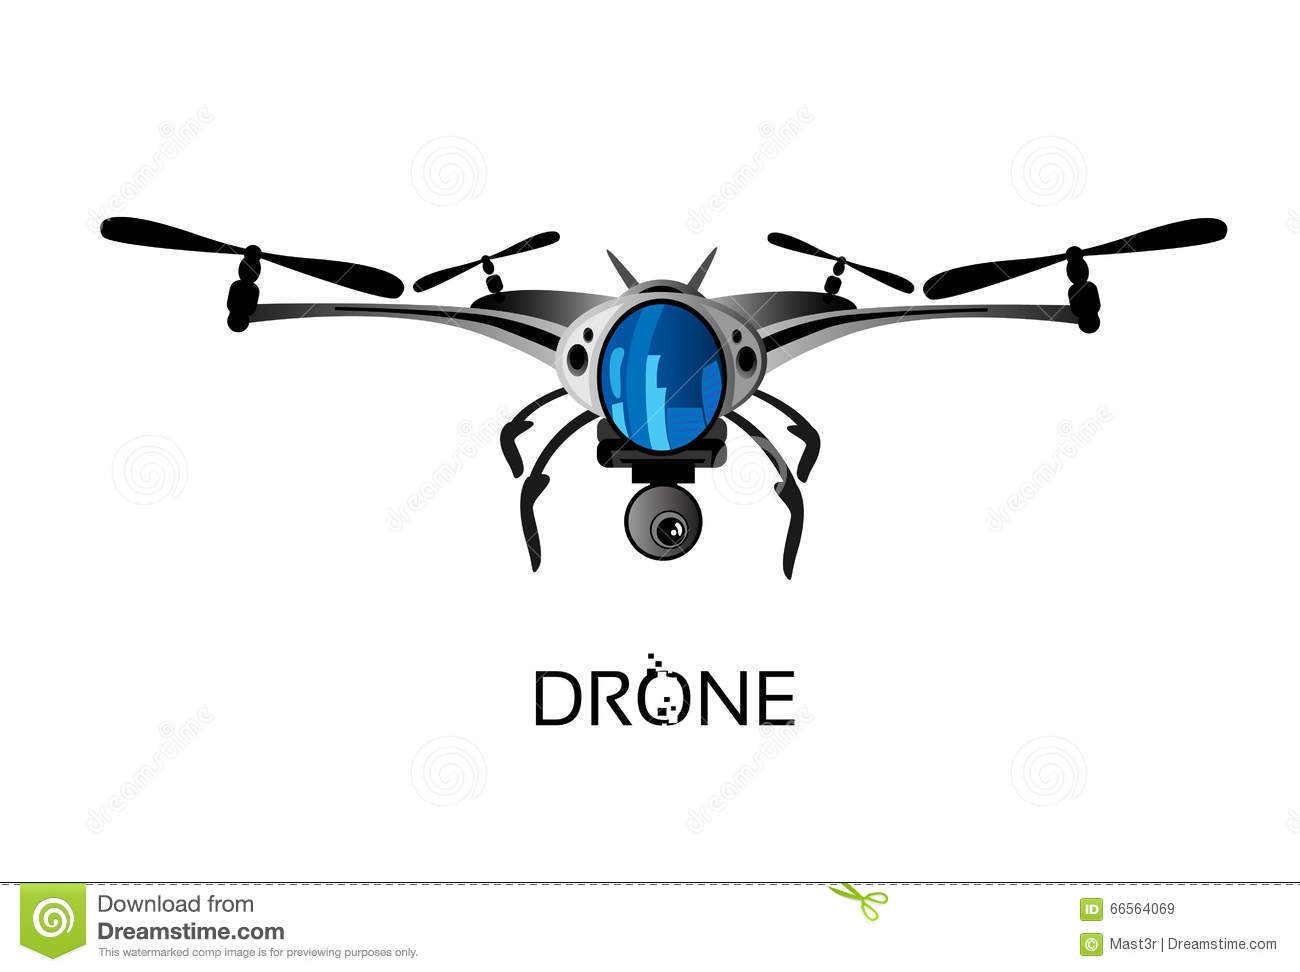 4 propeller drone with Stock Illustration Drone Flying Air Quadrocopter Logo Icon Vector Illustration Image66564069 on Dji Spark Versus Dji Mavic Pro together with 332100944617 further DJI Phantom 3 Professional further Honda Is Making A Luxury Jet With Really Weird Engines moreover Royalty Free Stock Photos Delivery Drone Package D Concept Image36097648.